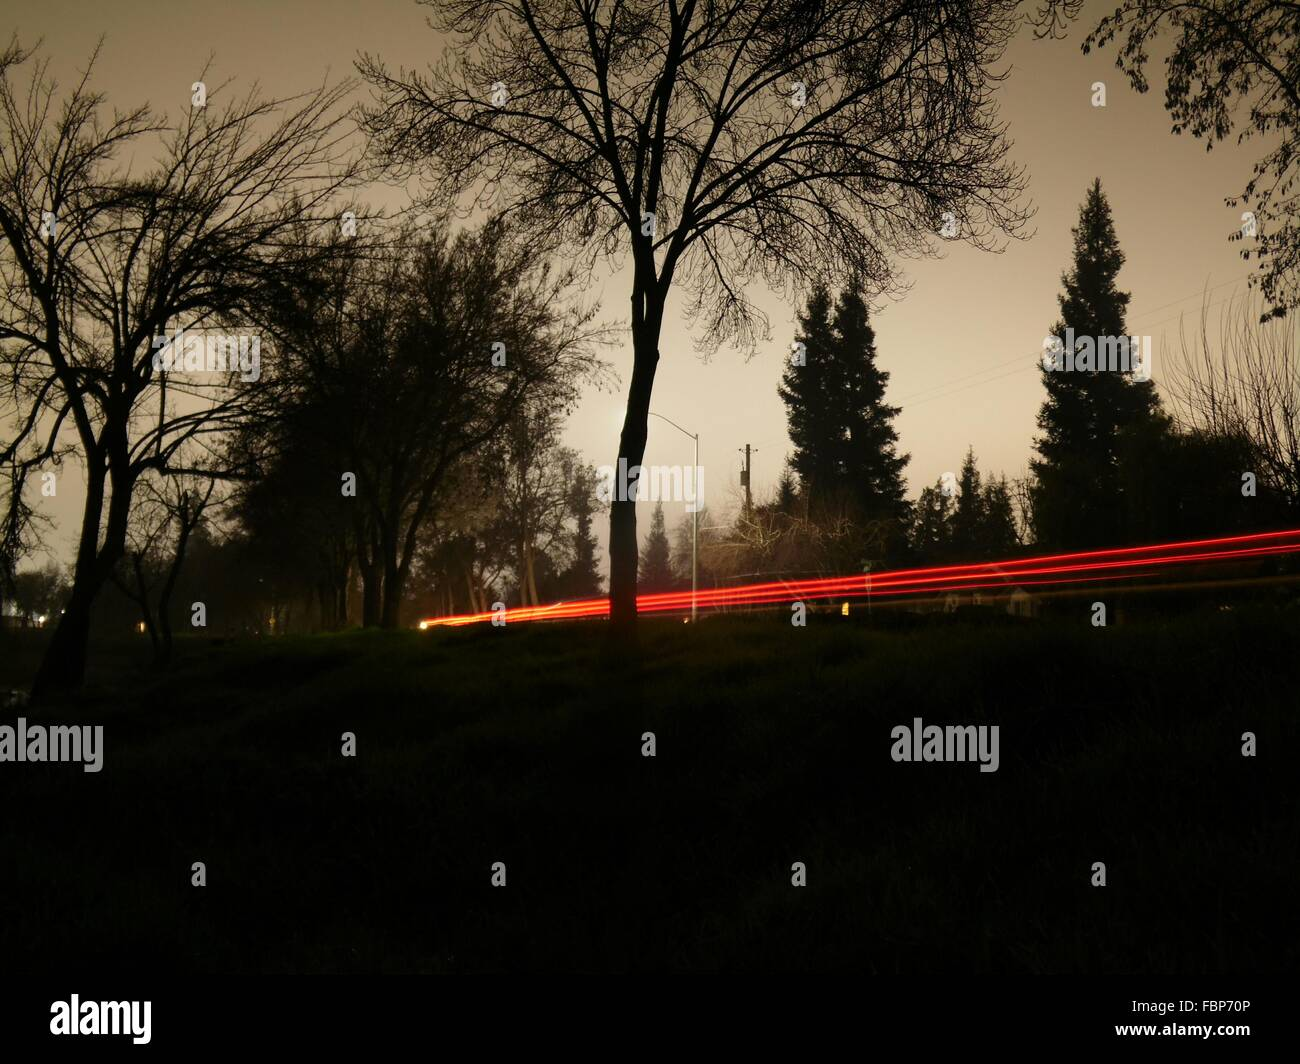 Light Trails Amidst Silhouette Trees Against Sky At Dusk - Stock Image